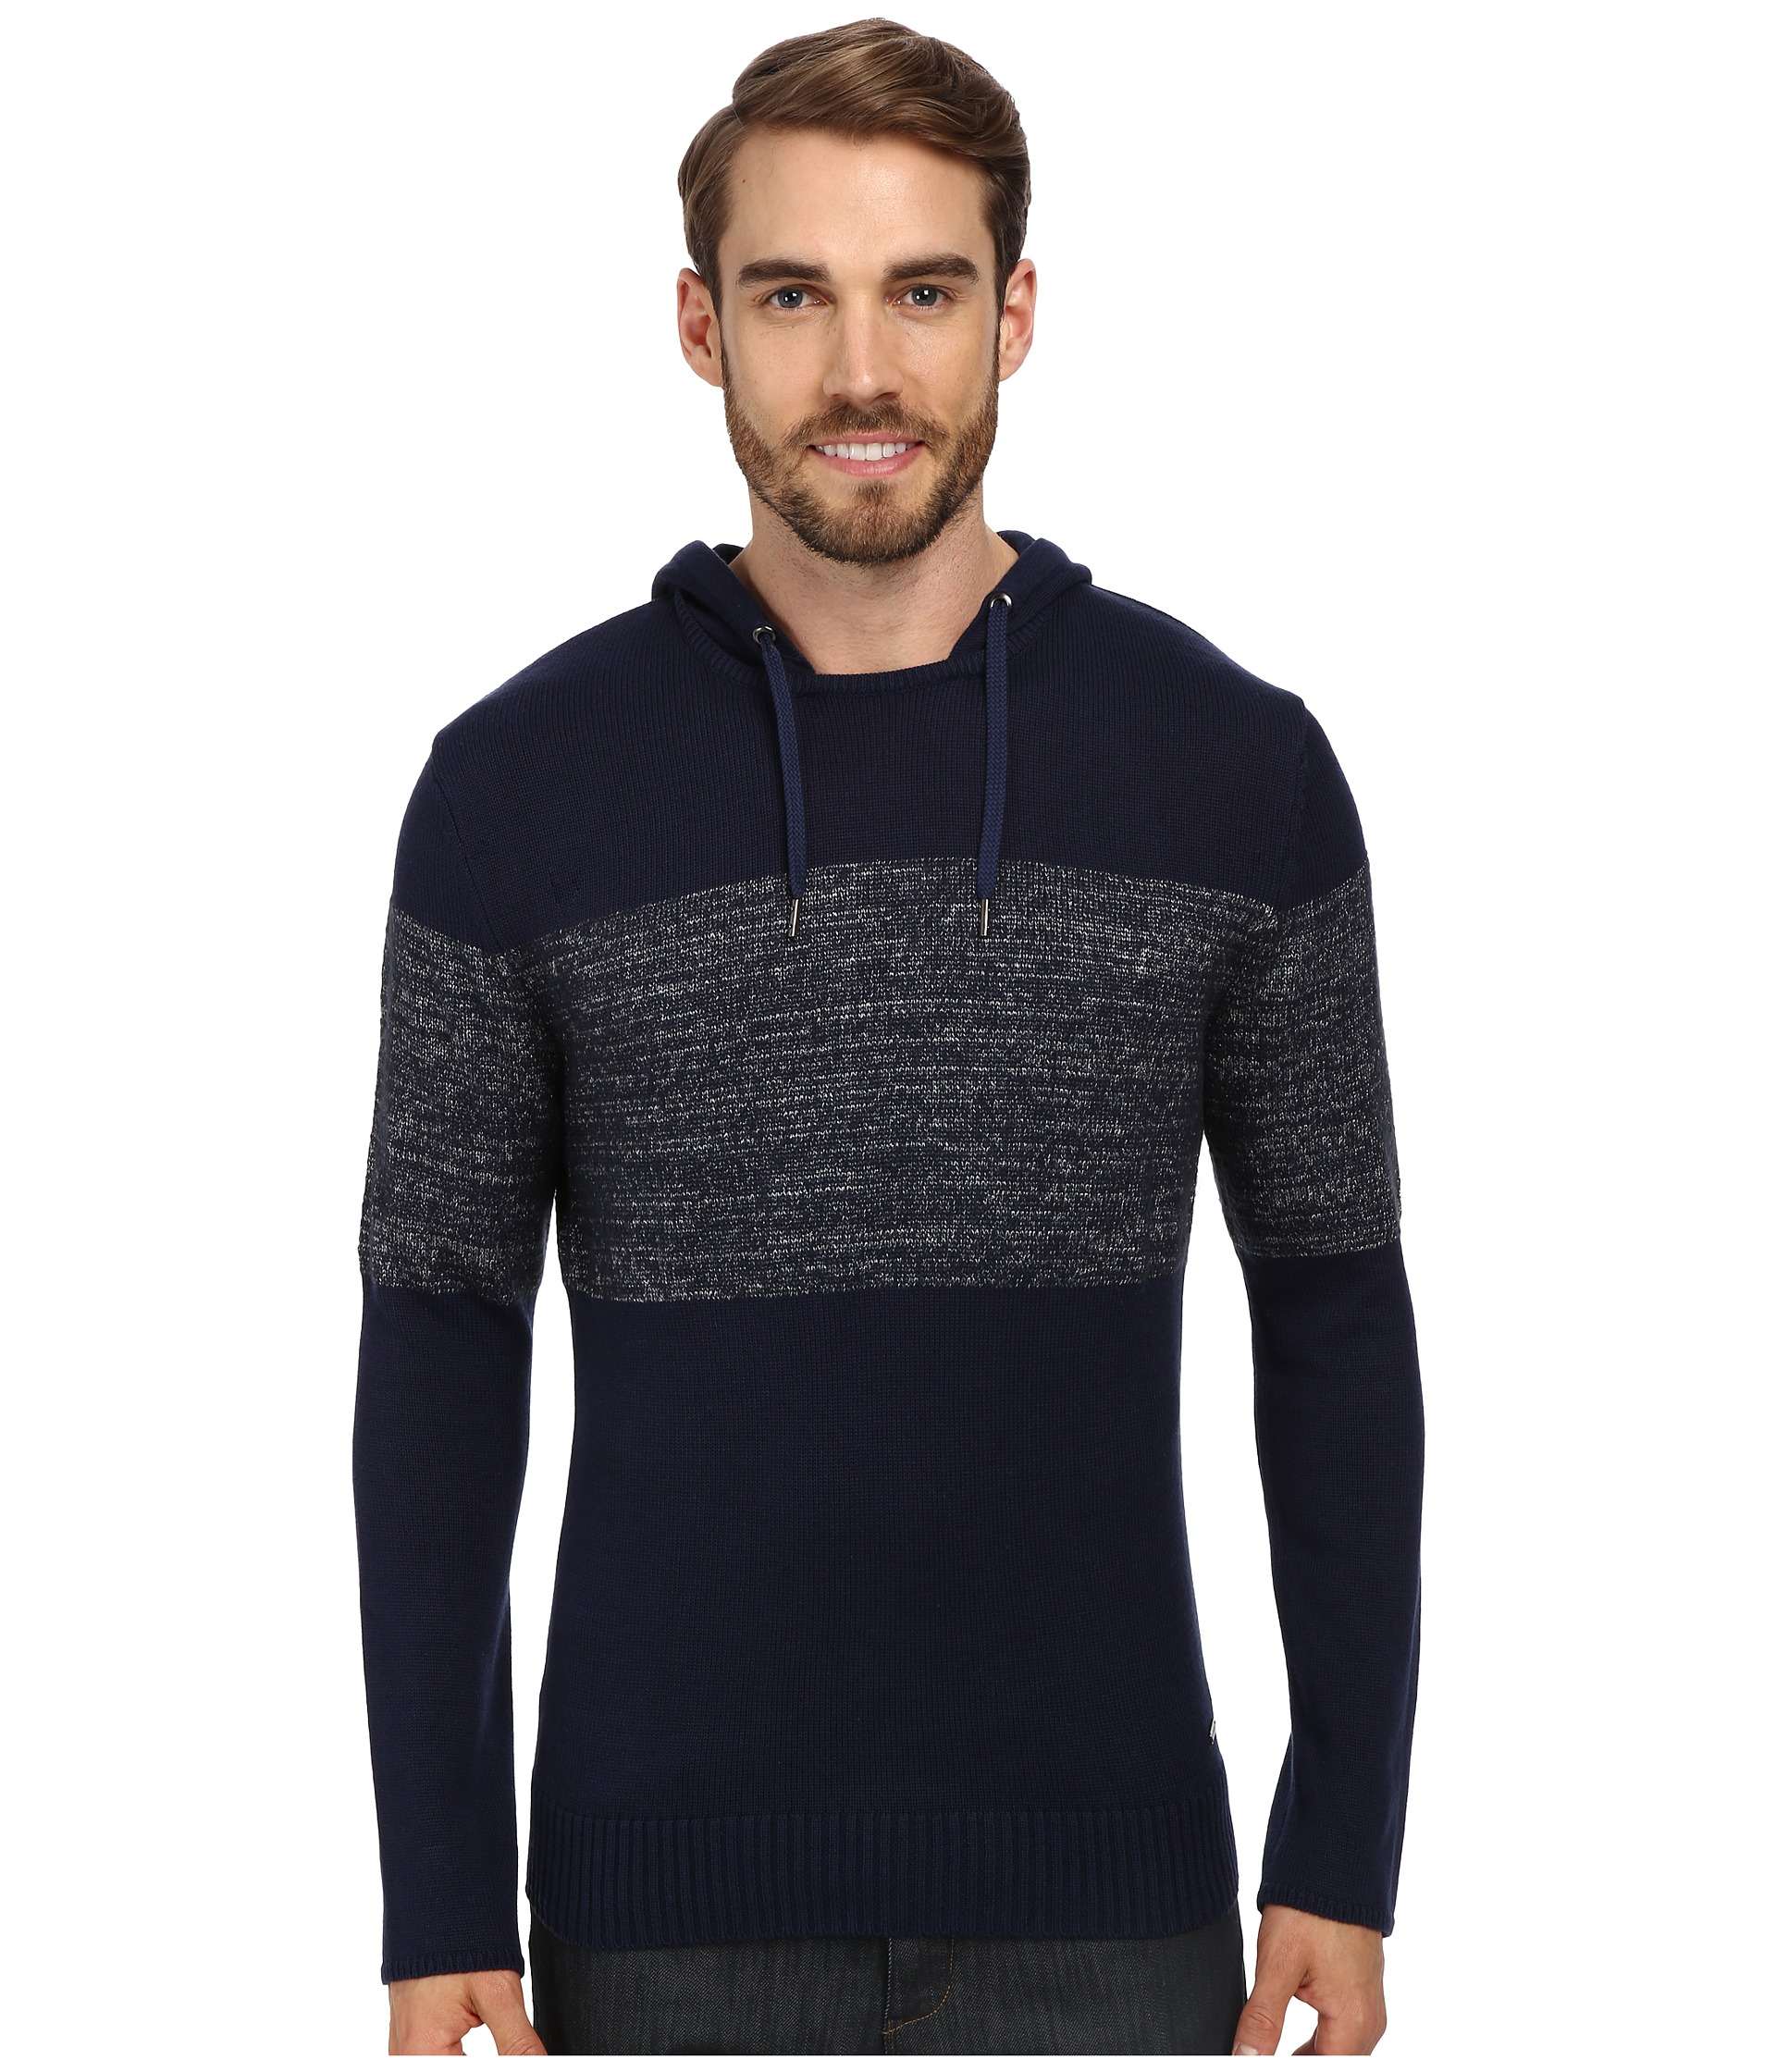 calvin klein jeans 7gg parallel knit colorblocked hoodie shipped free at zappos. Black Bedroom Furniture Sets. Home Design Ideas